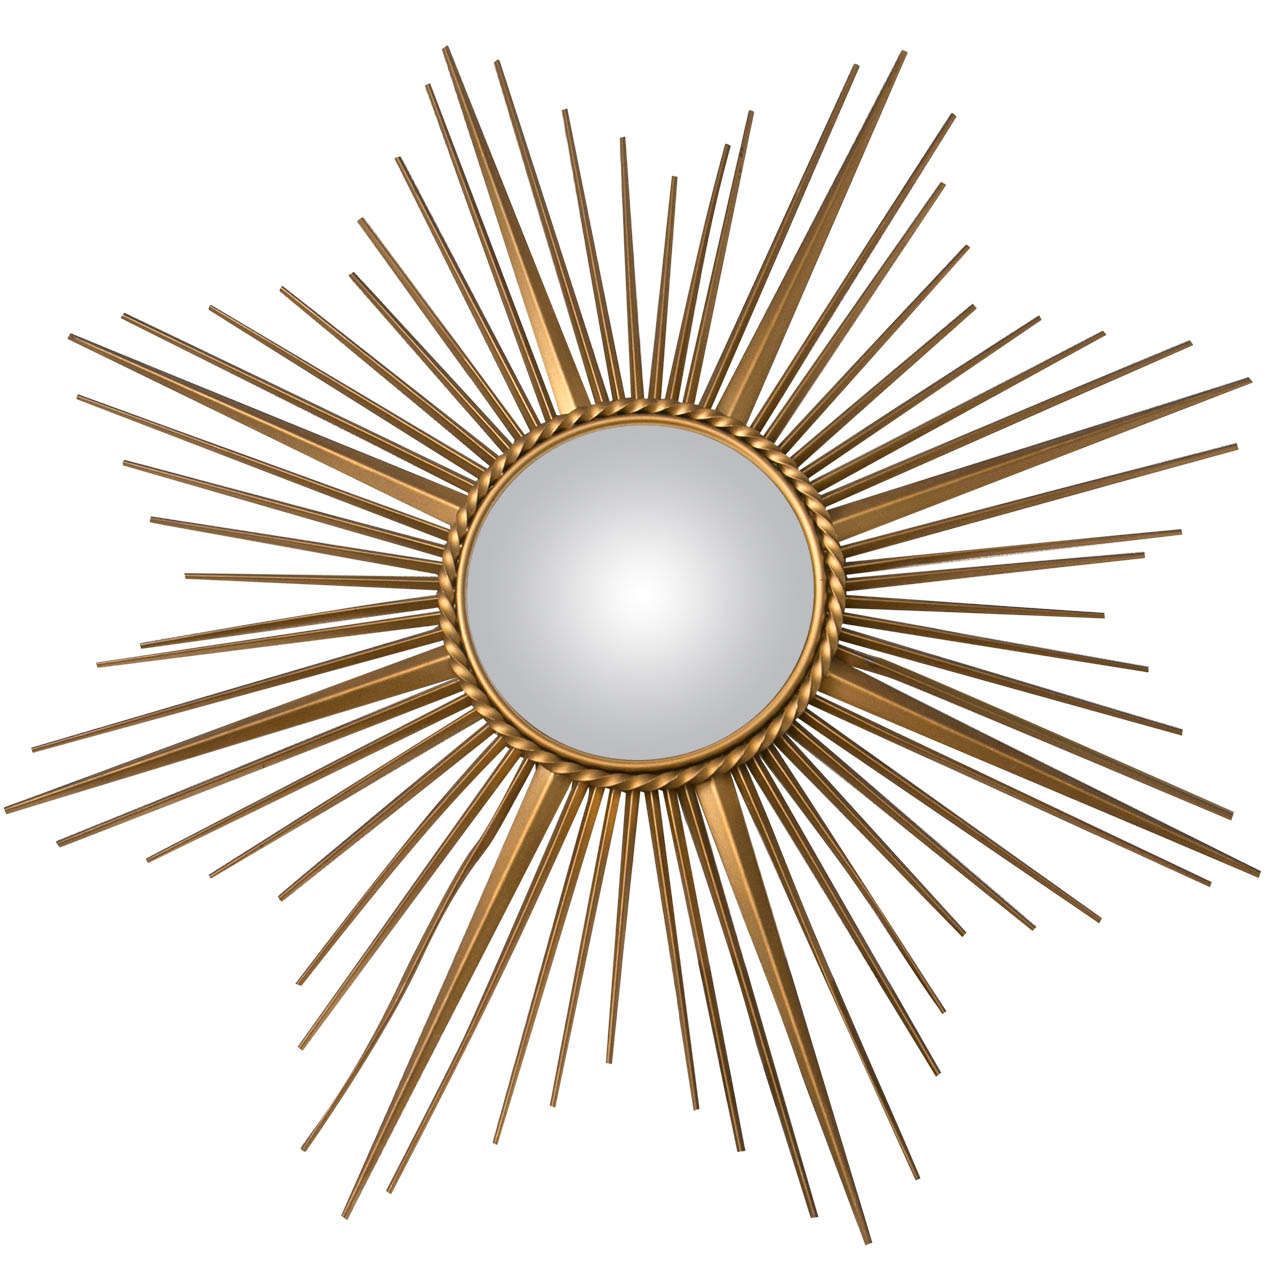 Gilt metal chaty vallauris mirror for sale at 1stdibs for Chaty vallauris miroir